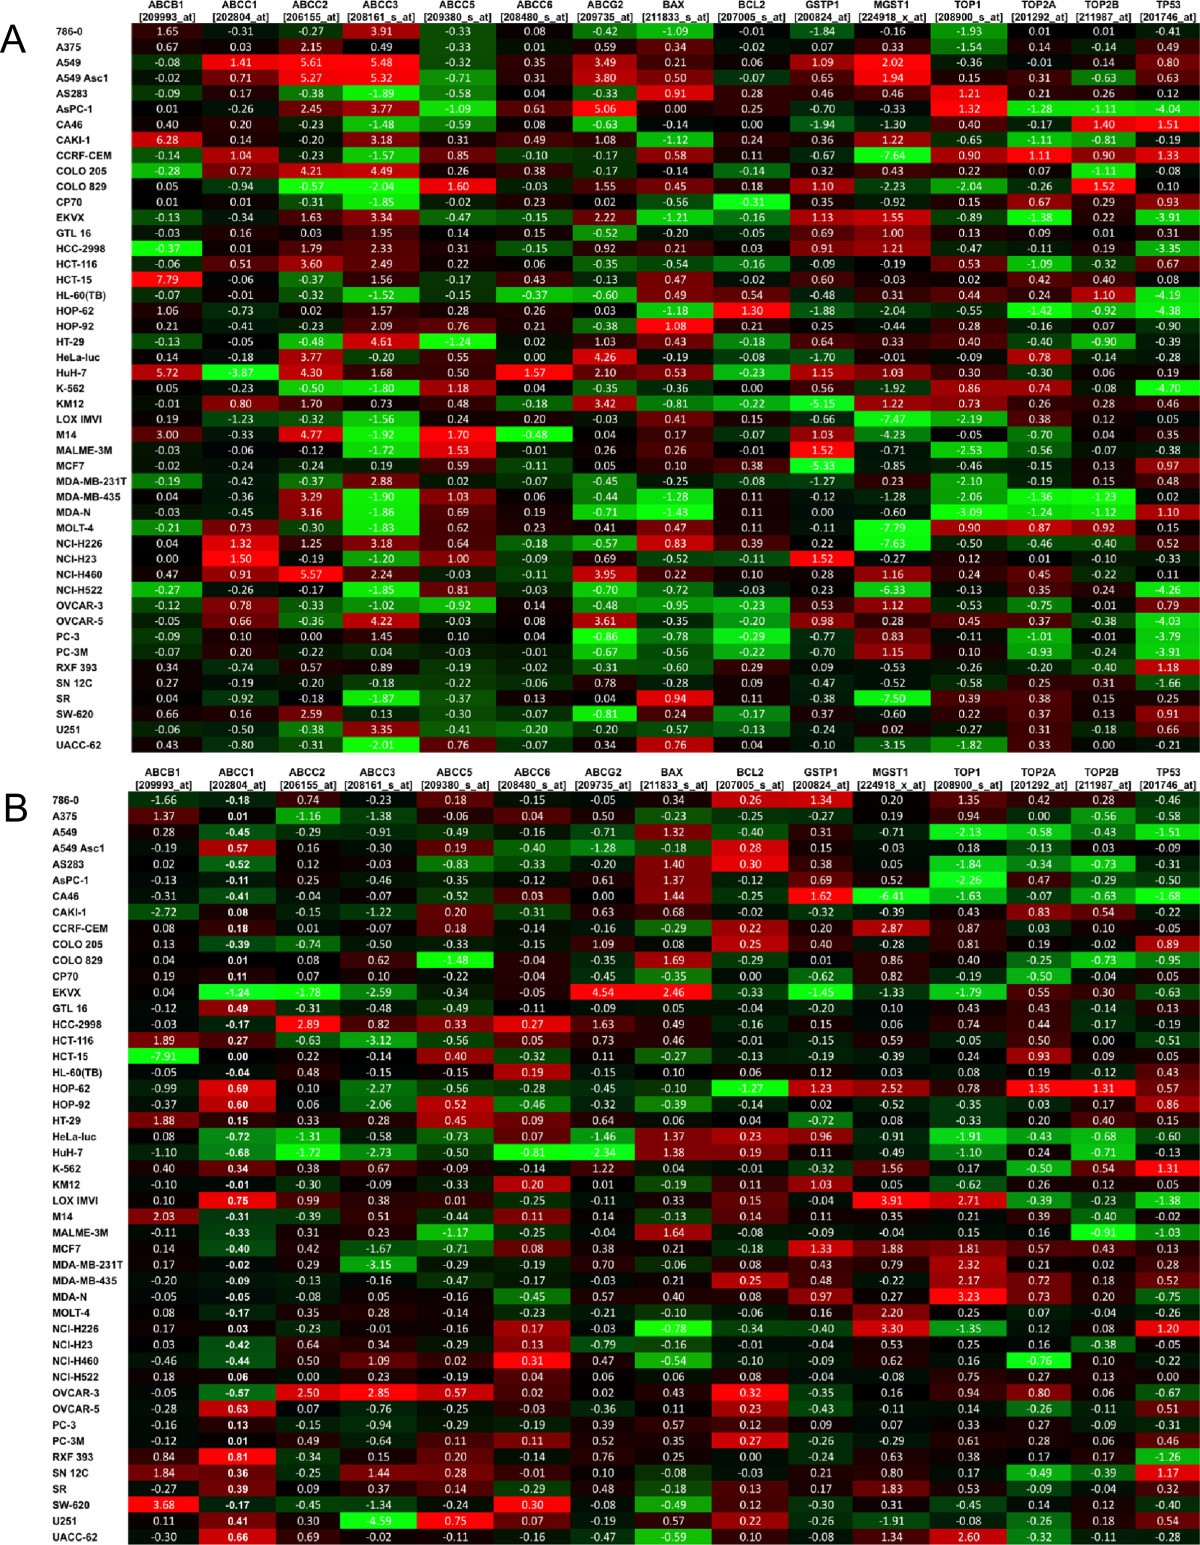 Gene expression profiling of 49 human tumor xenografts from in